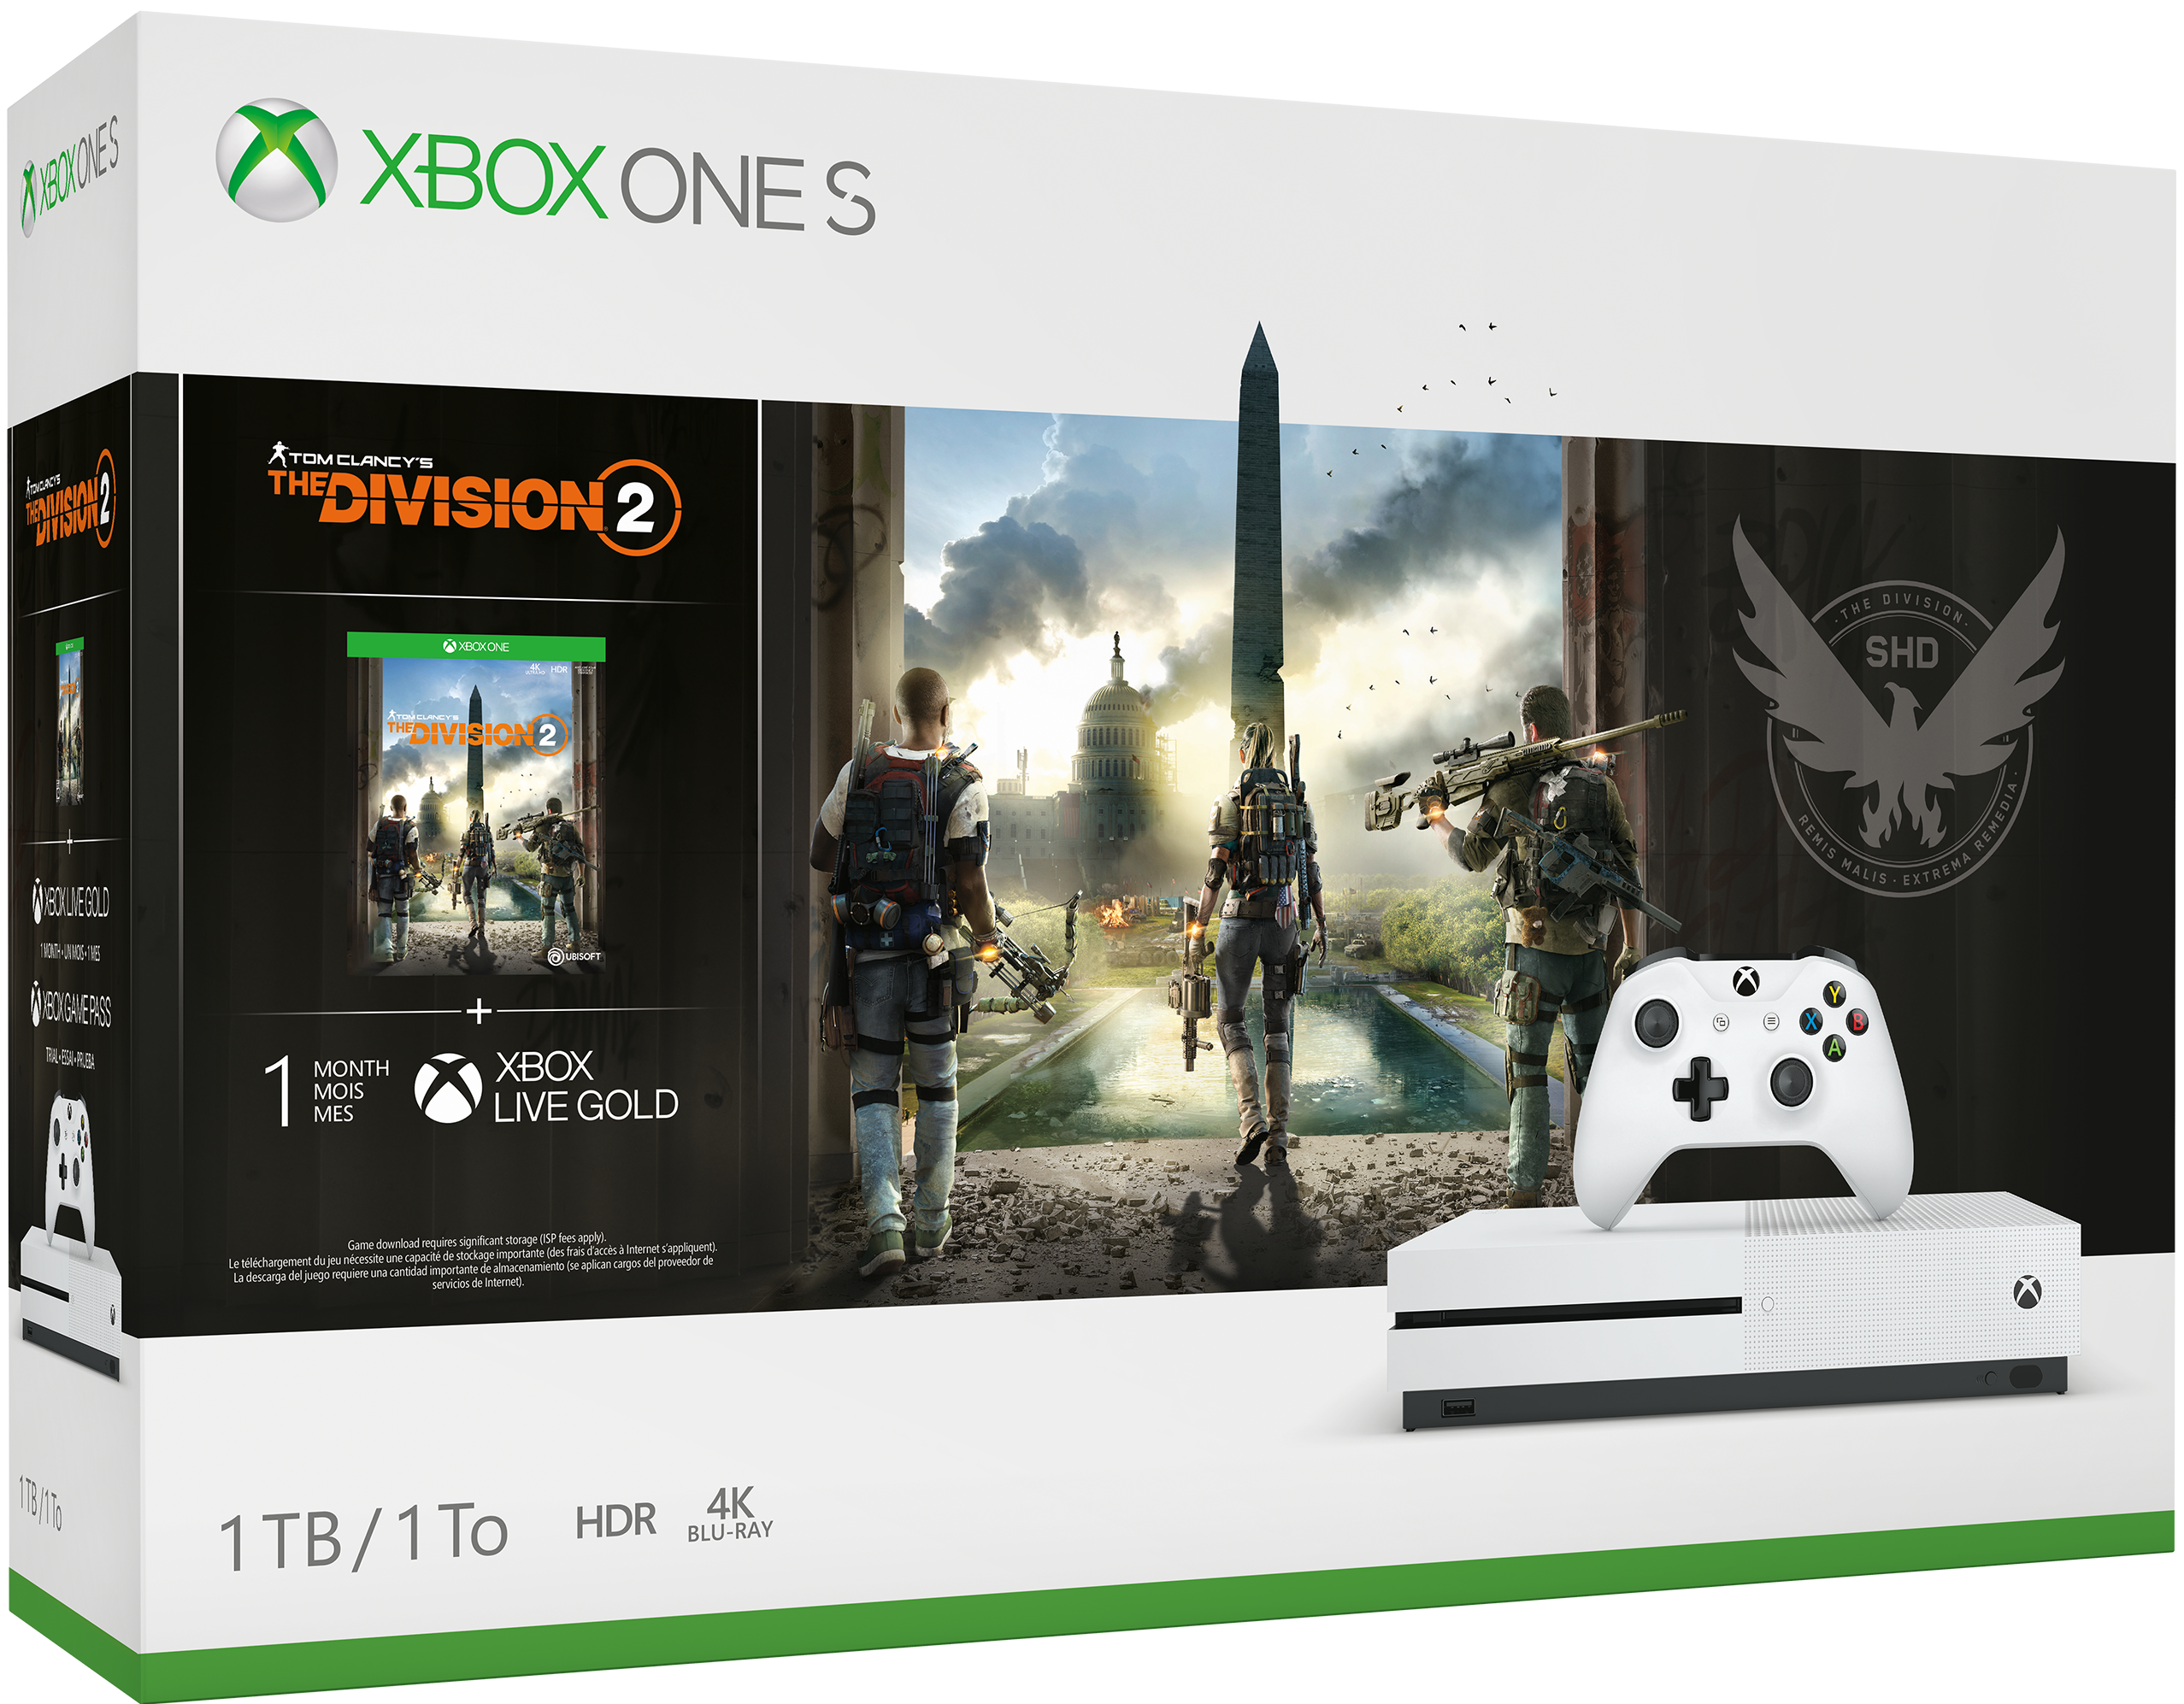 Xbox One S Tom Clancy's The Division 2 bundle box art